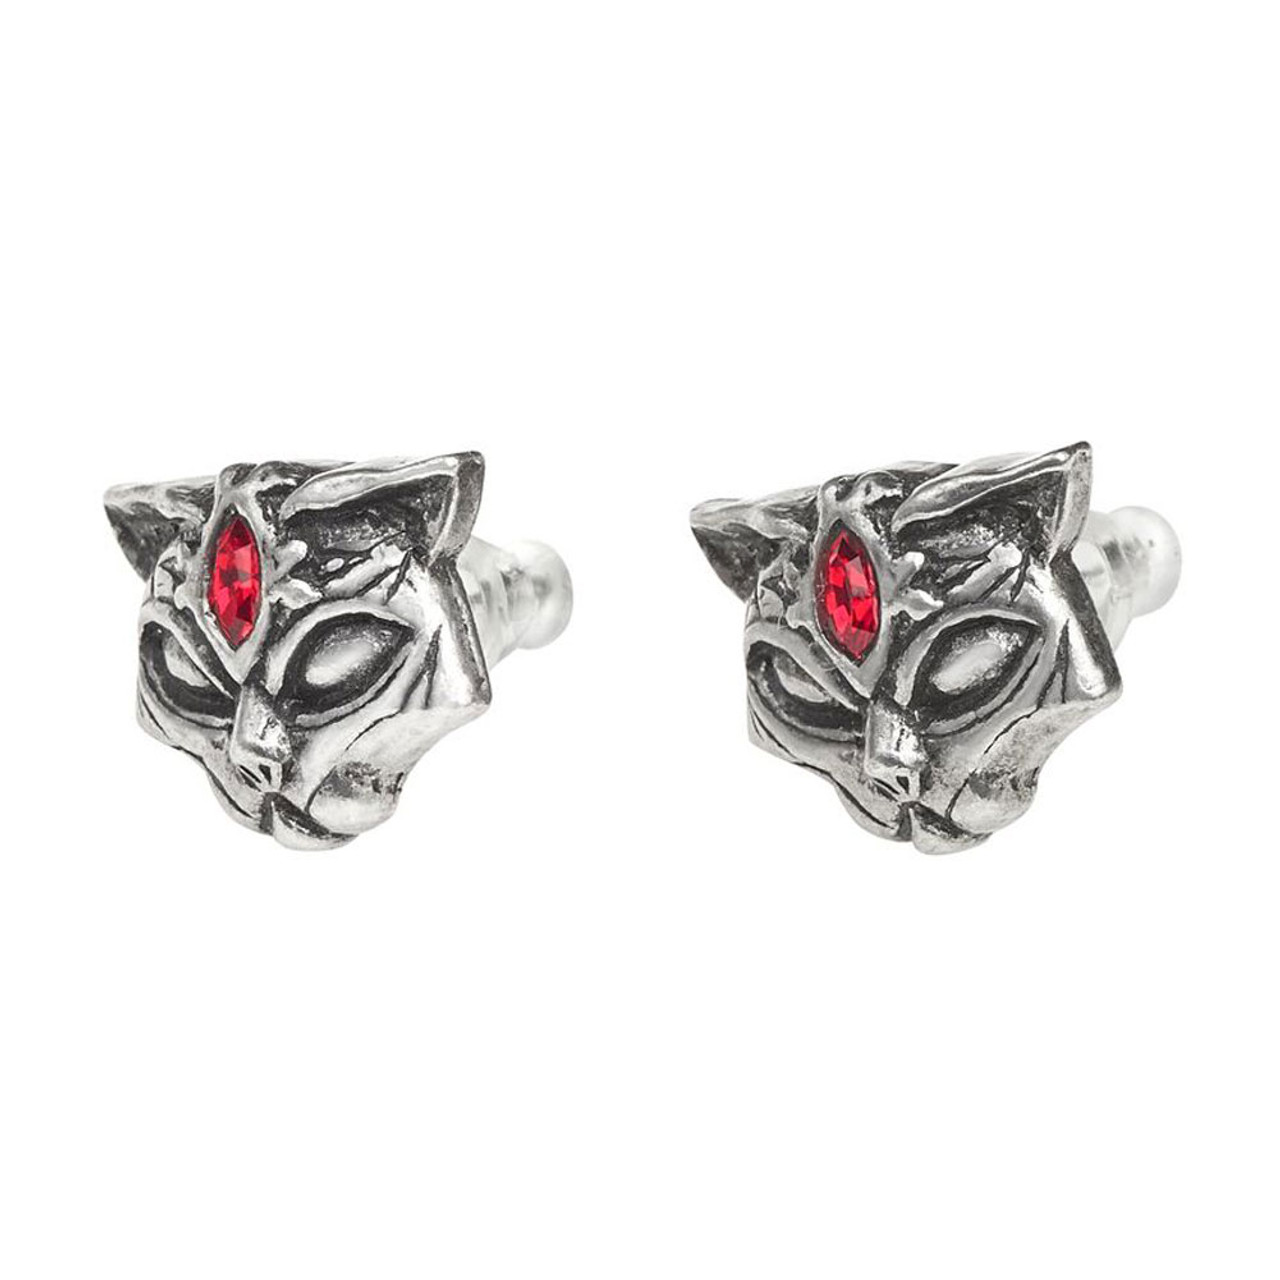 05a1d2213 ... Alchemy Gothic Egyptian Sacred Cat Stud Earrings Pewter Jewelry E406 ...